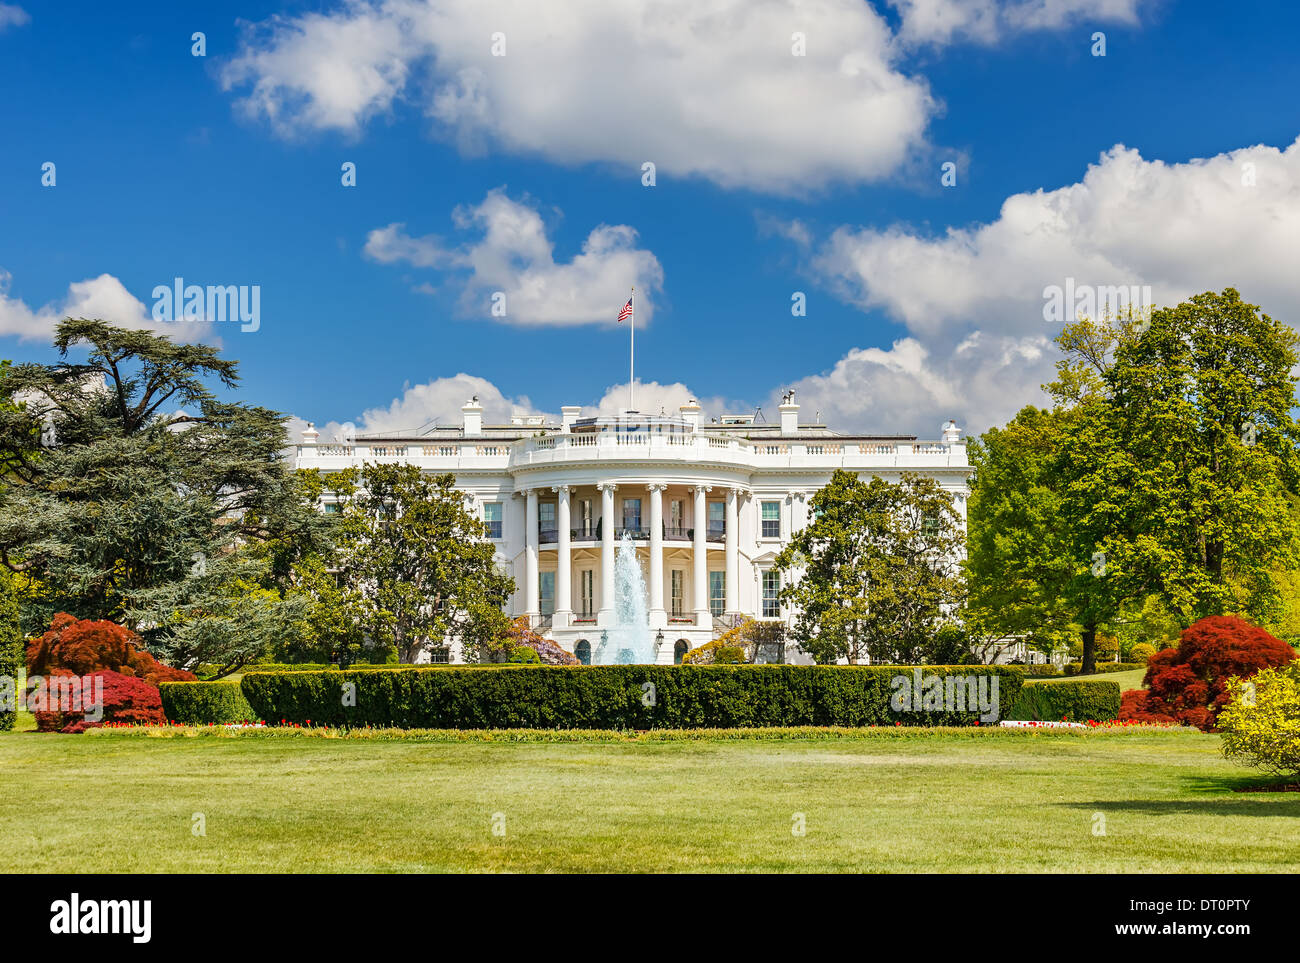 The White House - Stock Image